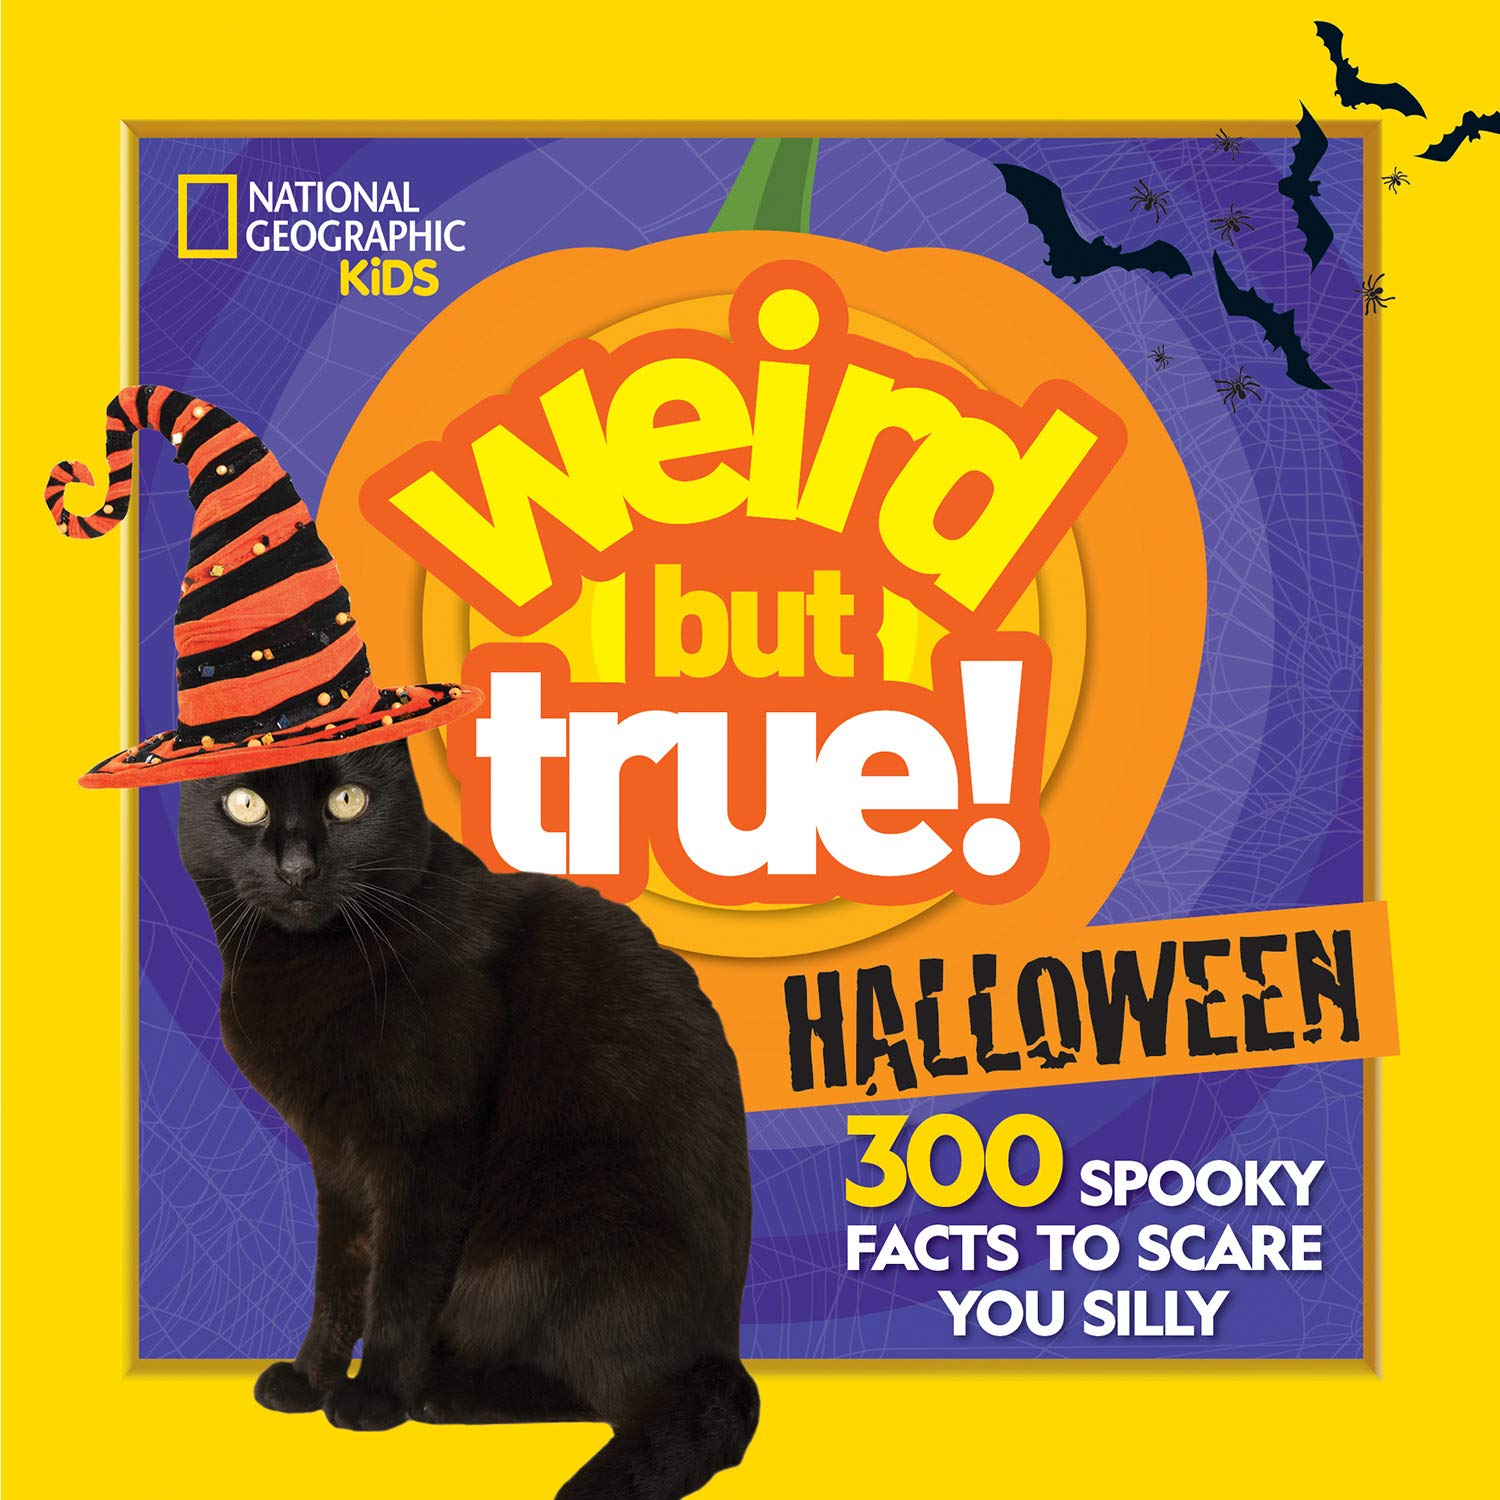 Spooky Facts About Halloween 2020 Weird But True Halloween: 300 Spooky Facts to Scare You Silly